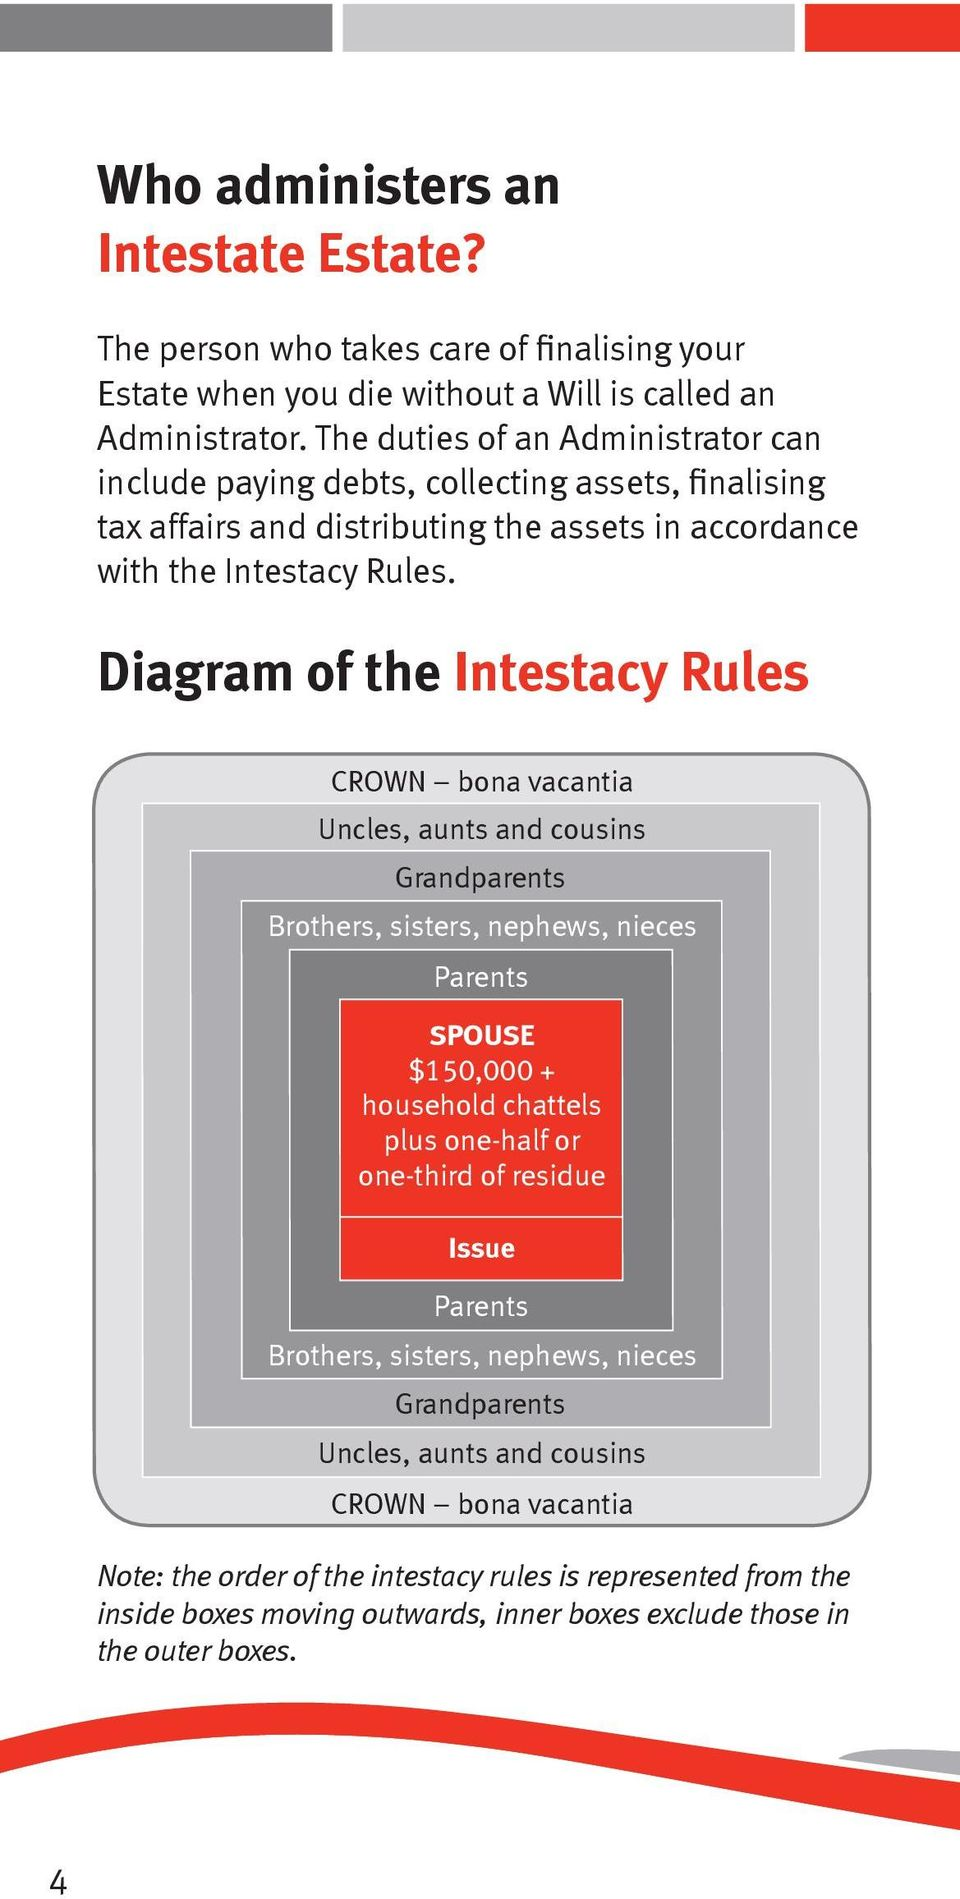 Diagram of the Intestacy Rules CROWN bona vacantia Uncles, aunts and cousins Grandparents Brothers, sisters, nephews, nieces Parents SPOUSE $150,000 + household chattels plus one-half or